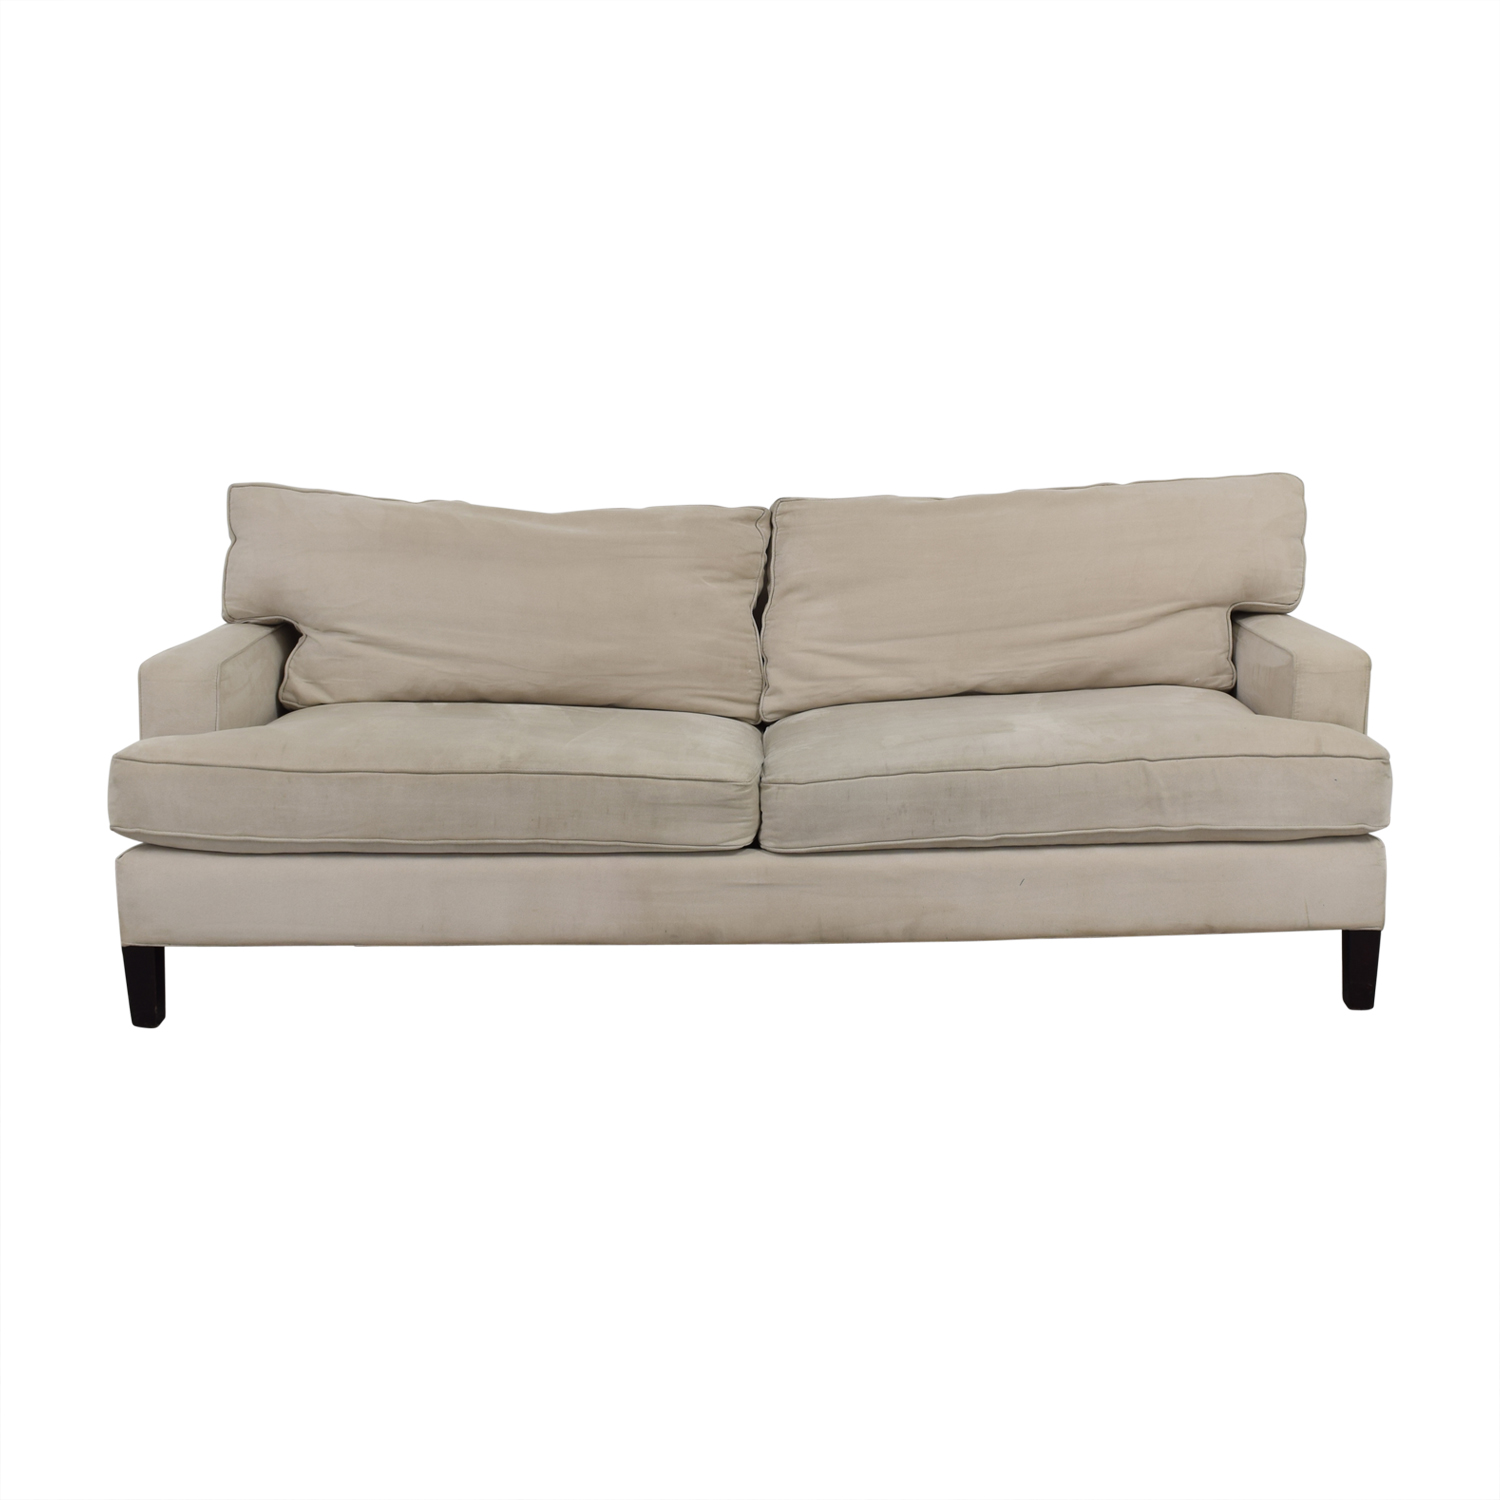 Room U0026 Board Room U0026 Board Hawthorne Couch Off White Couch Second ...